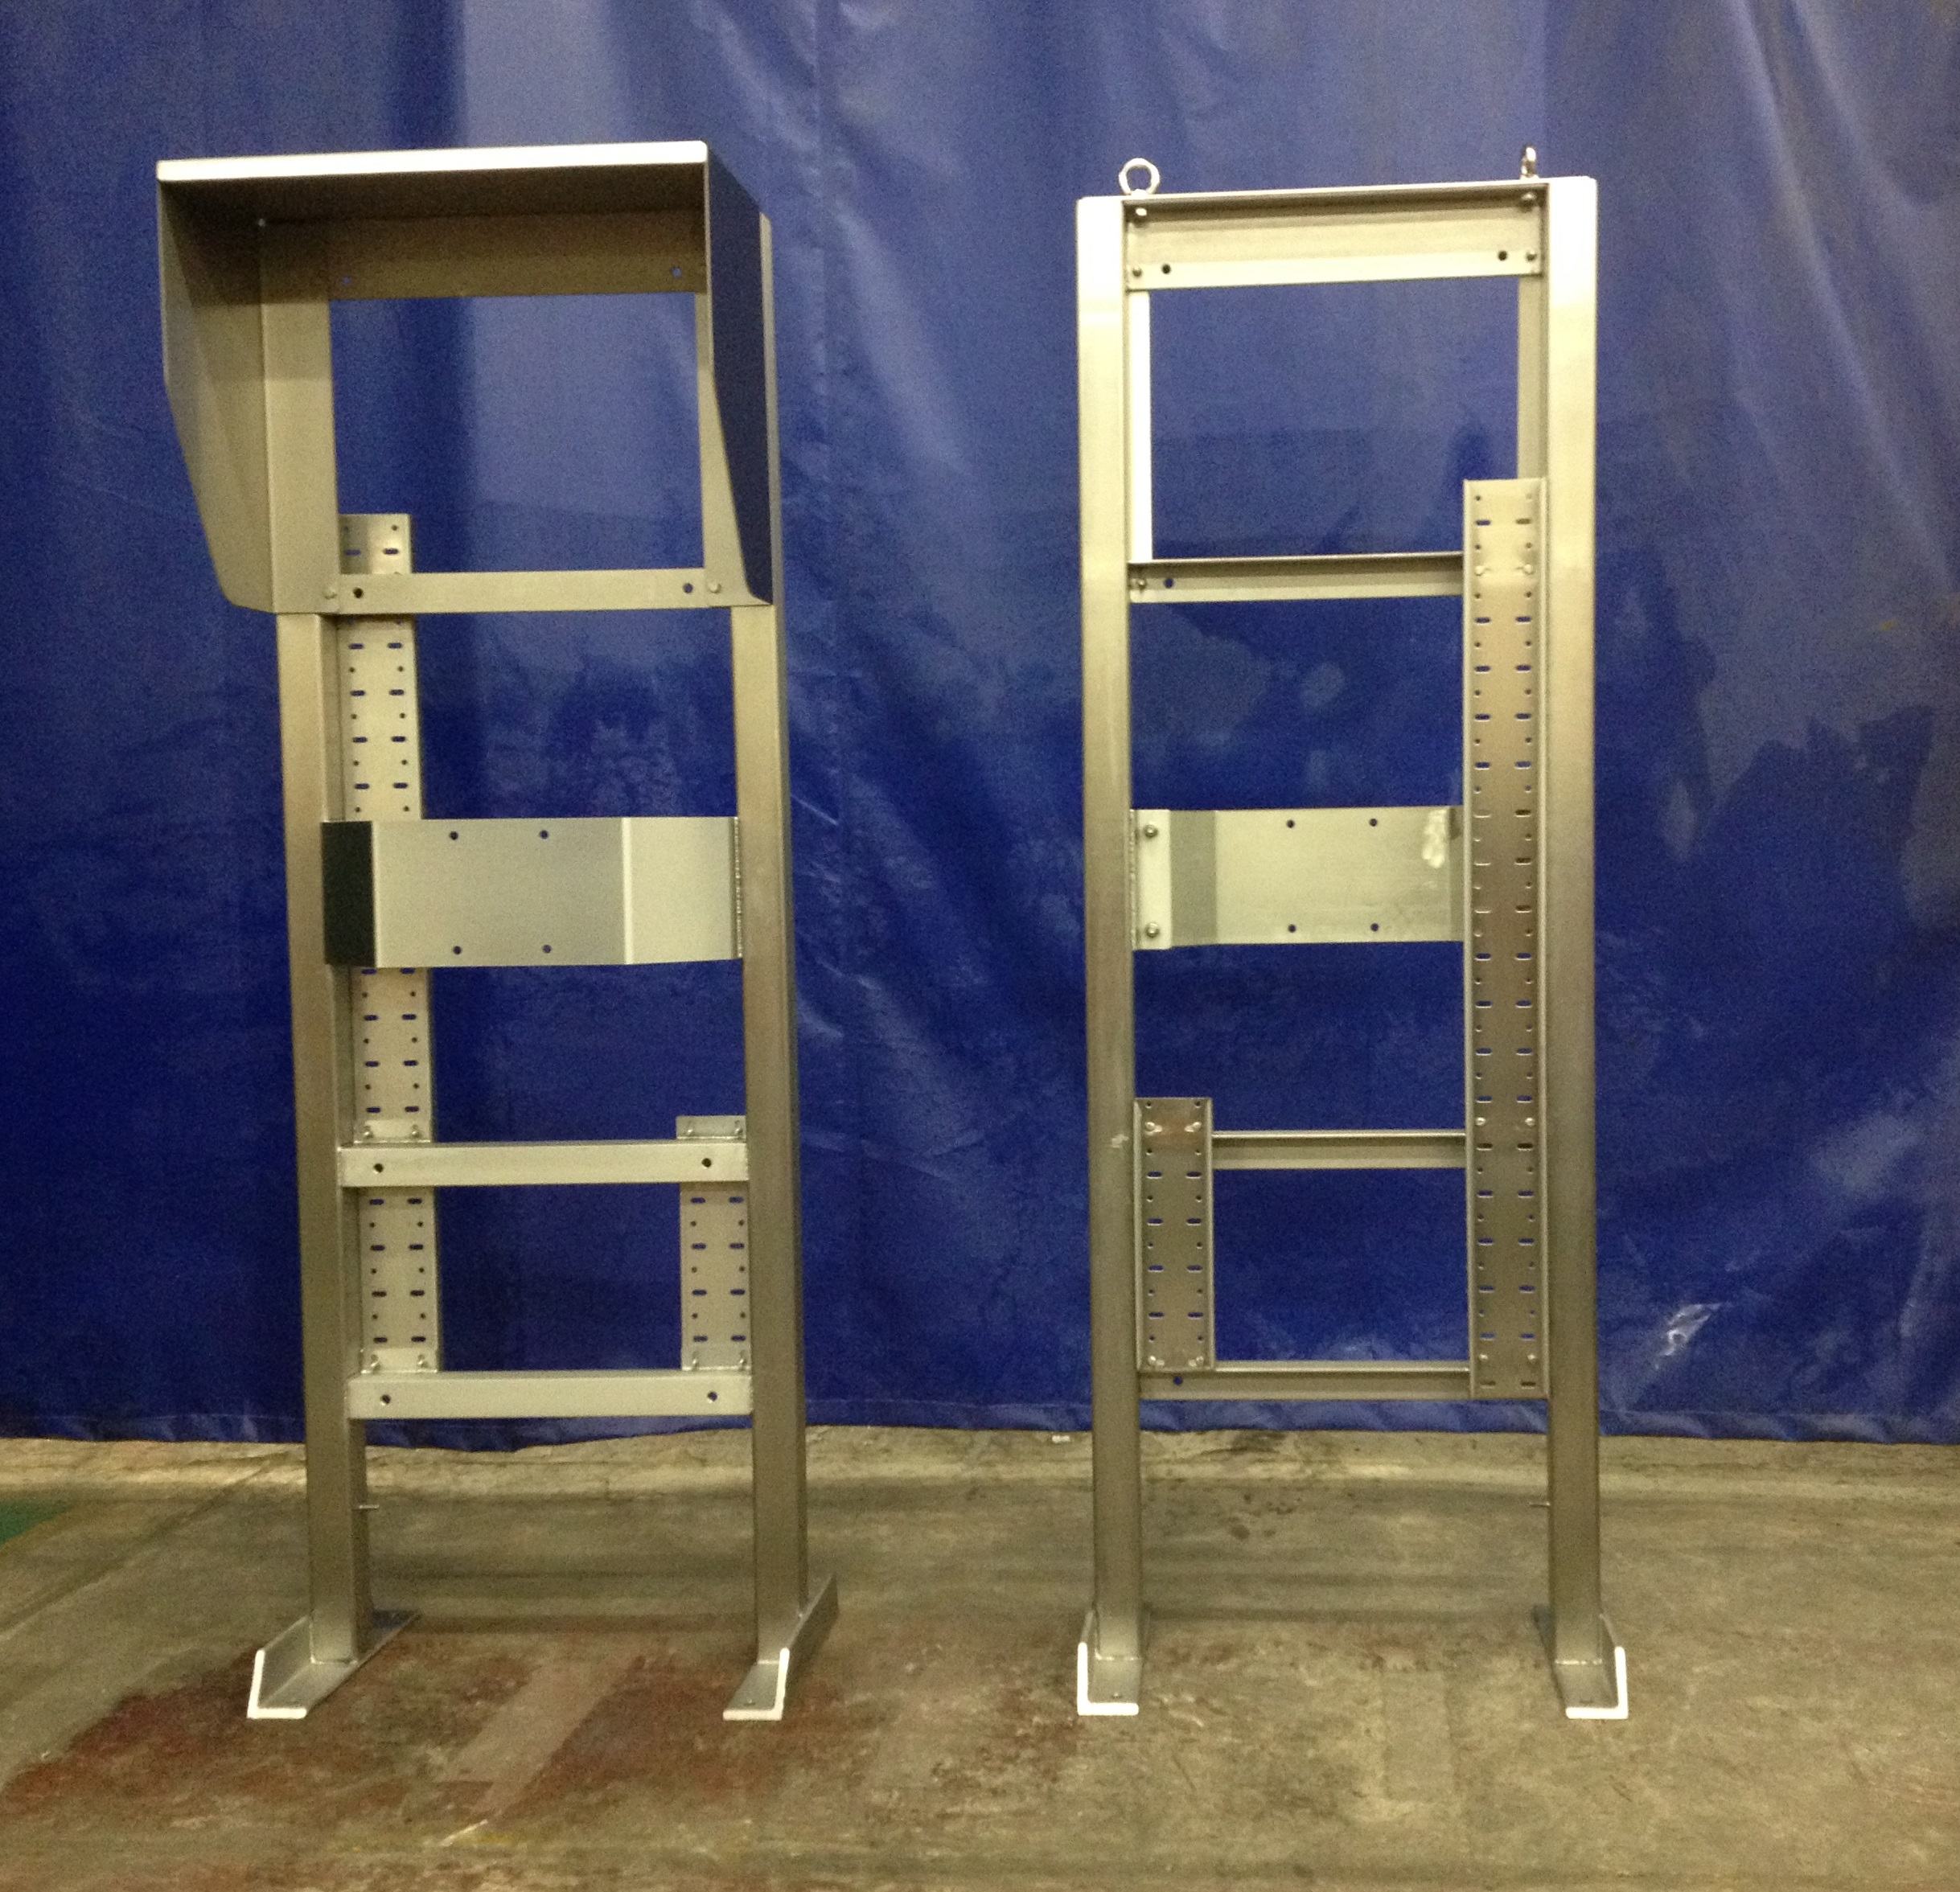 Stainless Steel Fabrication In Rotherham South Yorkshire Uk